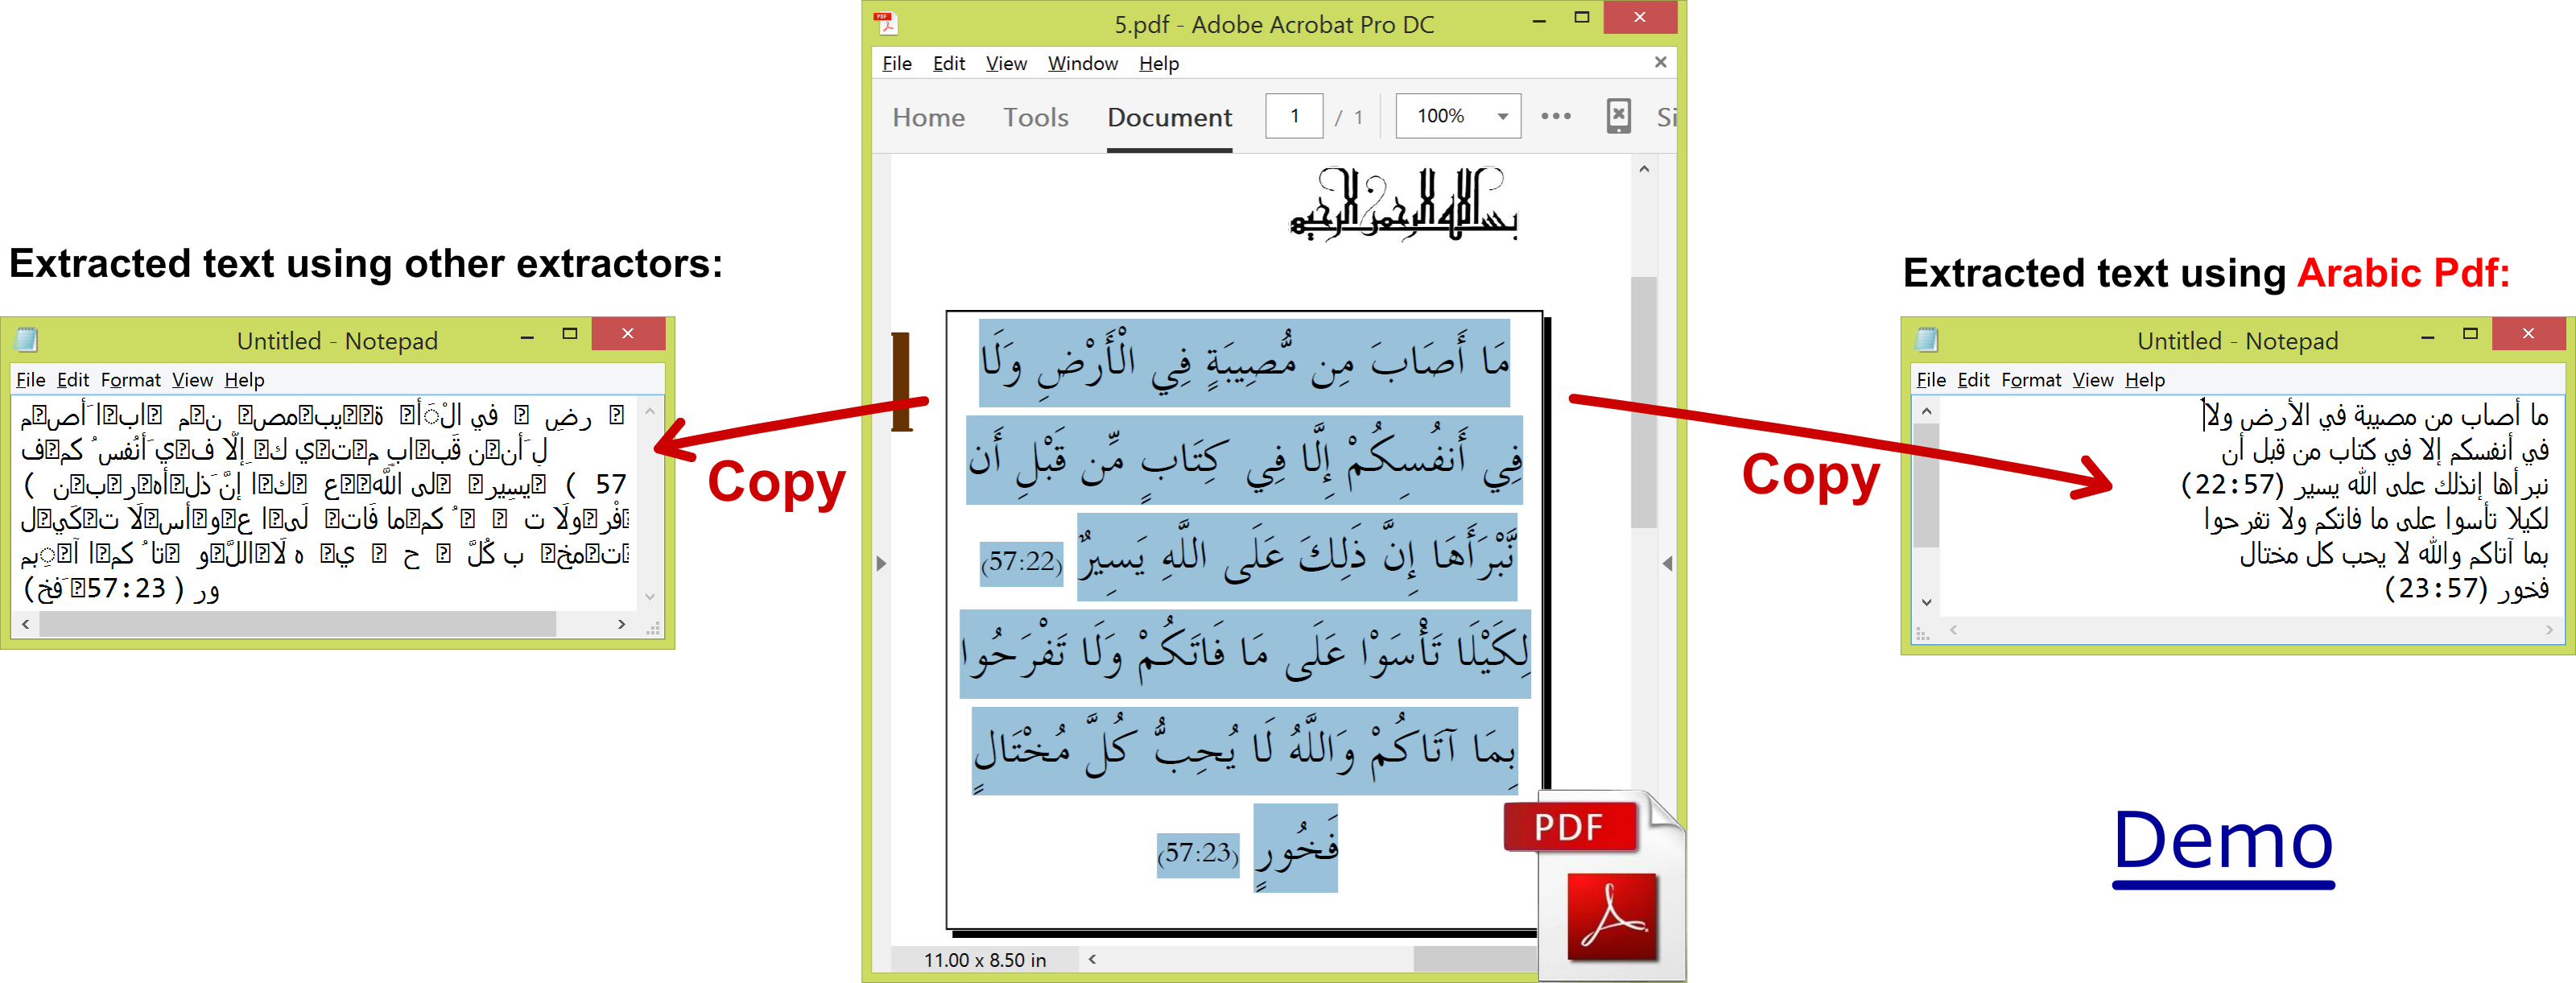 Edit text in png file online. Extract arabic from pdf